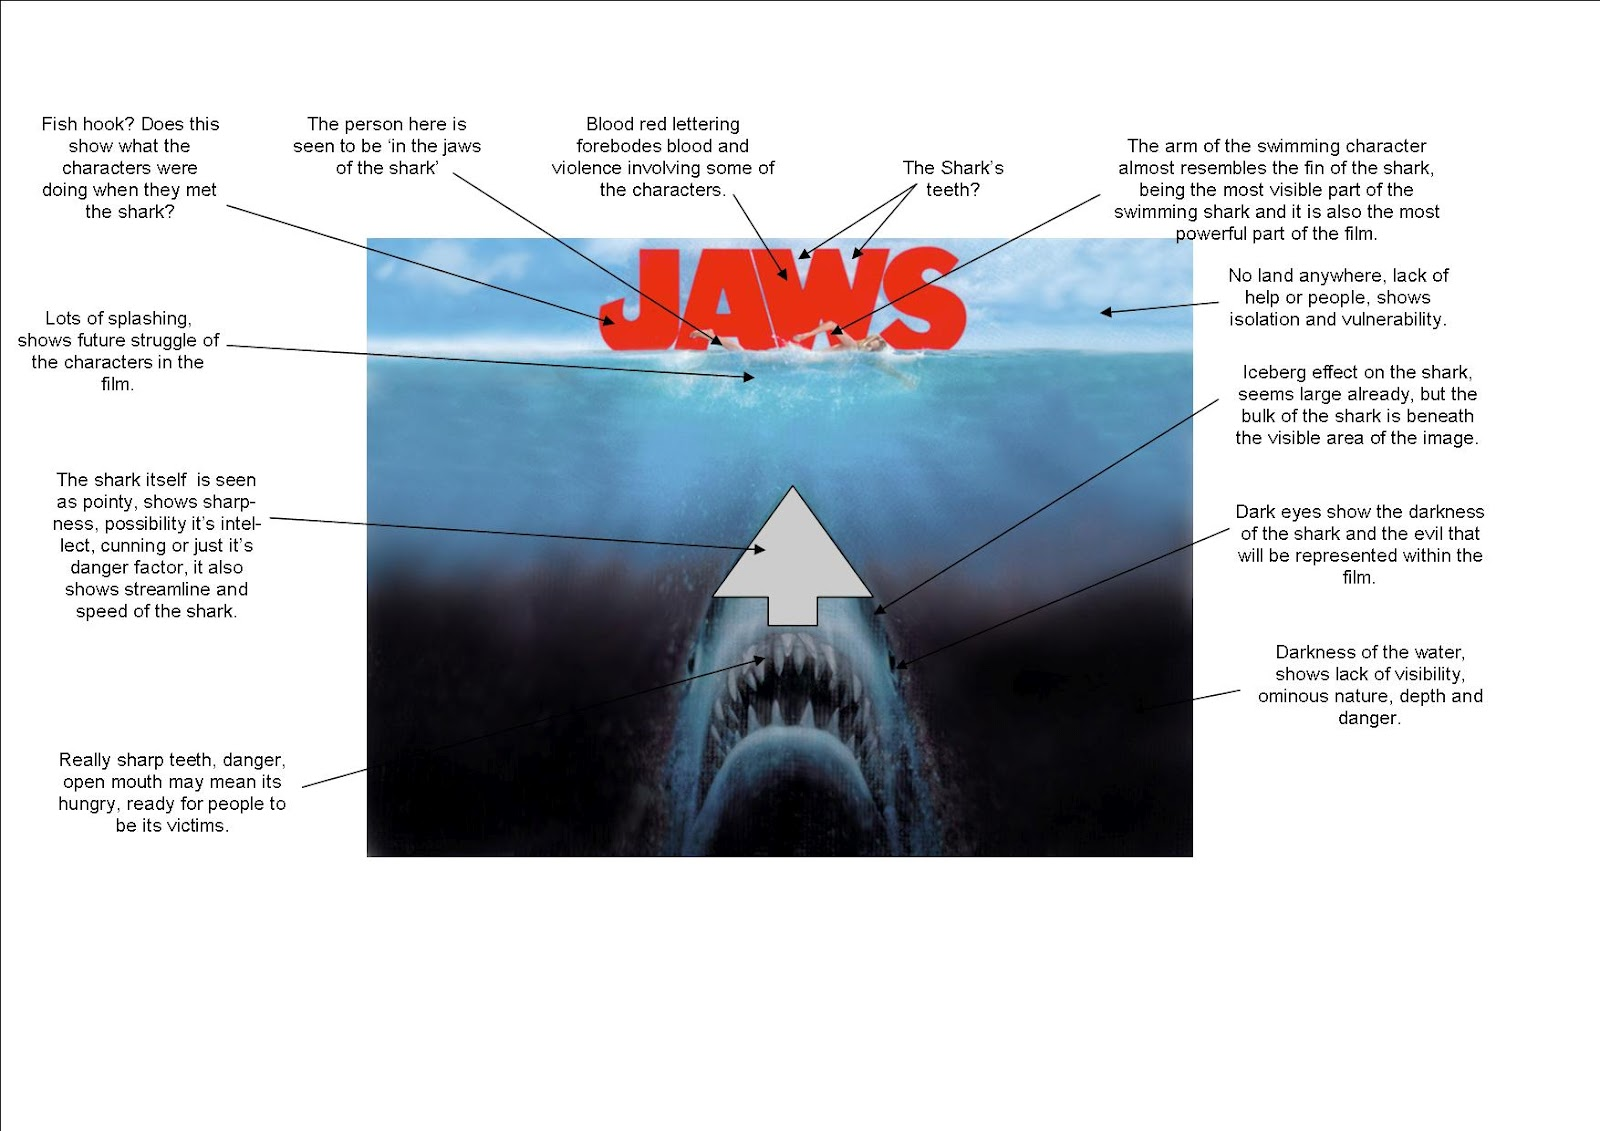 english media coursework jaws This was the film i created for the stop motion unit in my media btec class jaws theme thanks for james baker media coursework - duration.